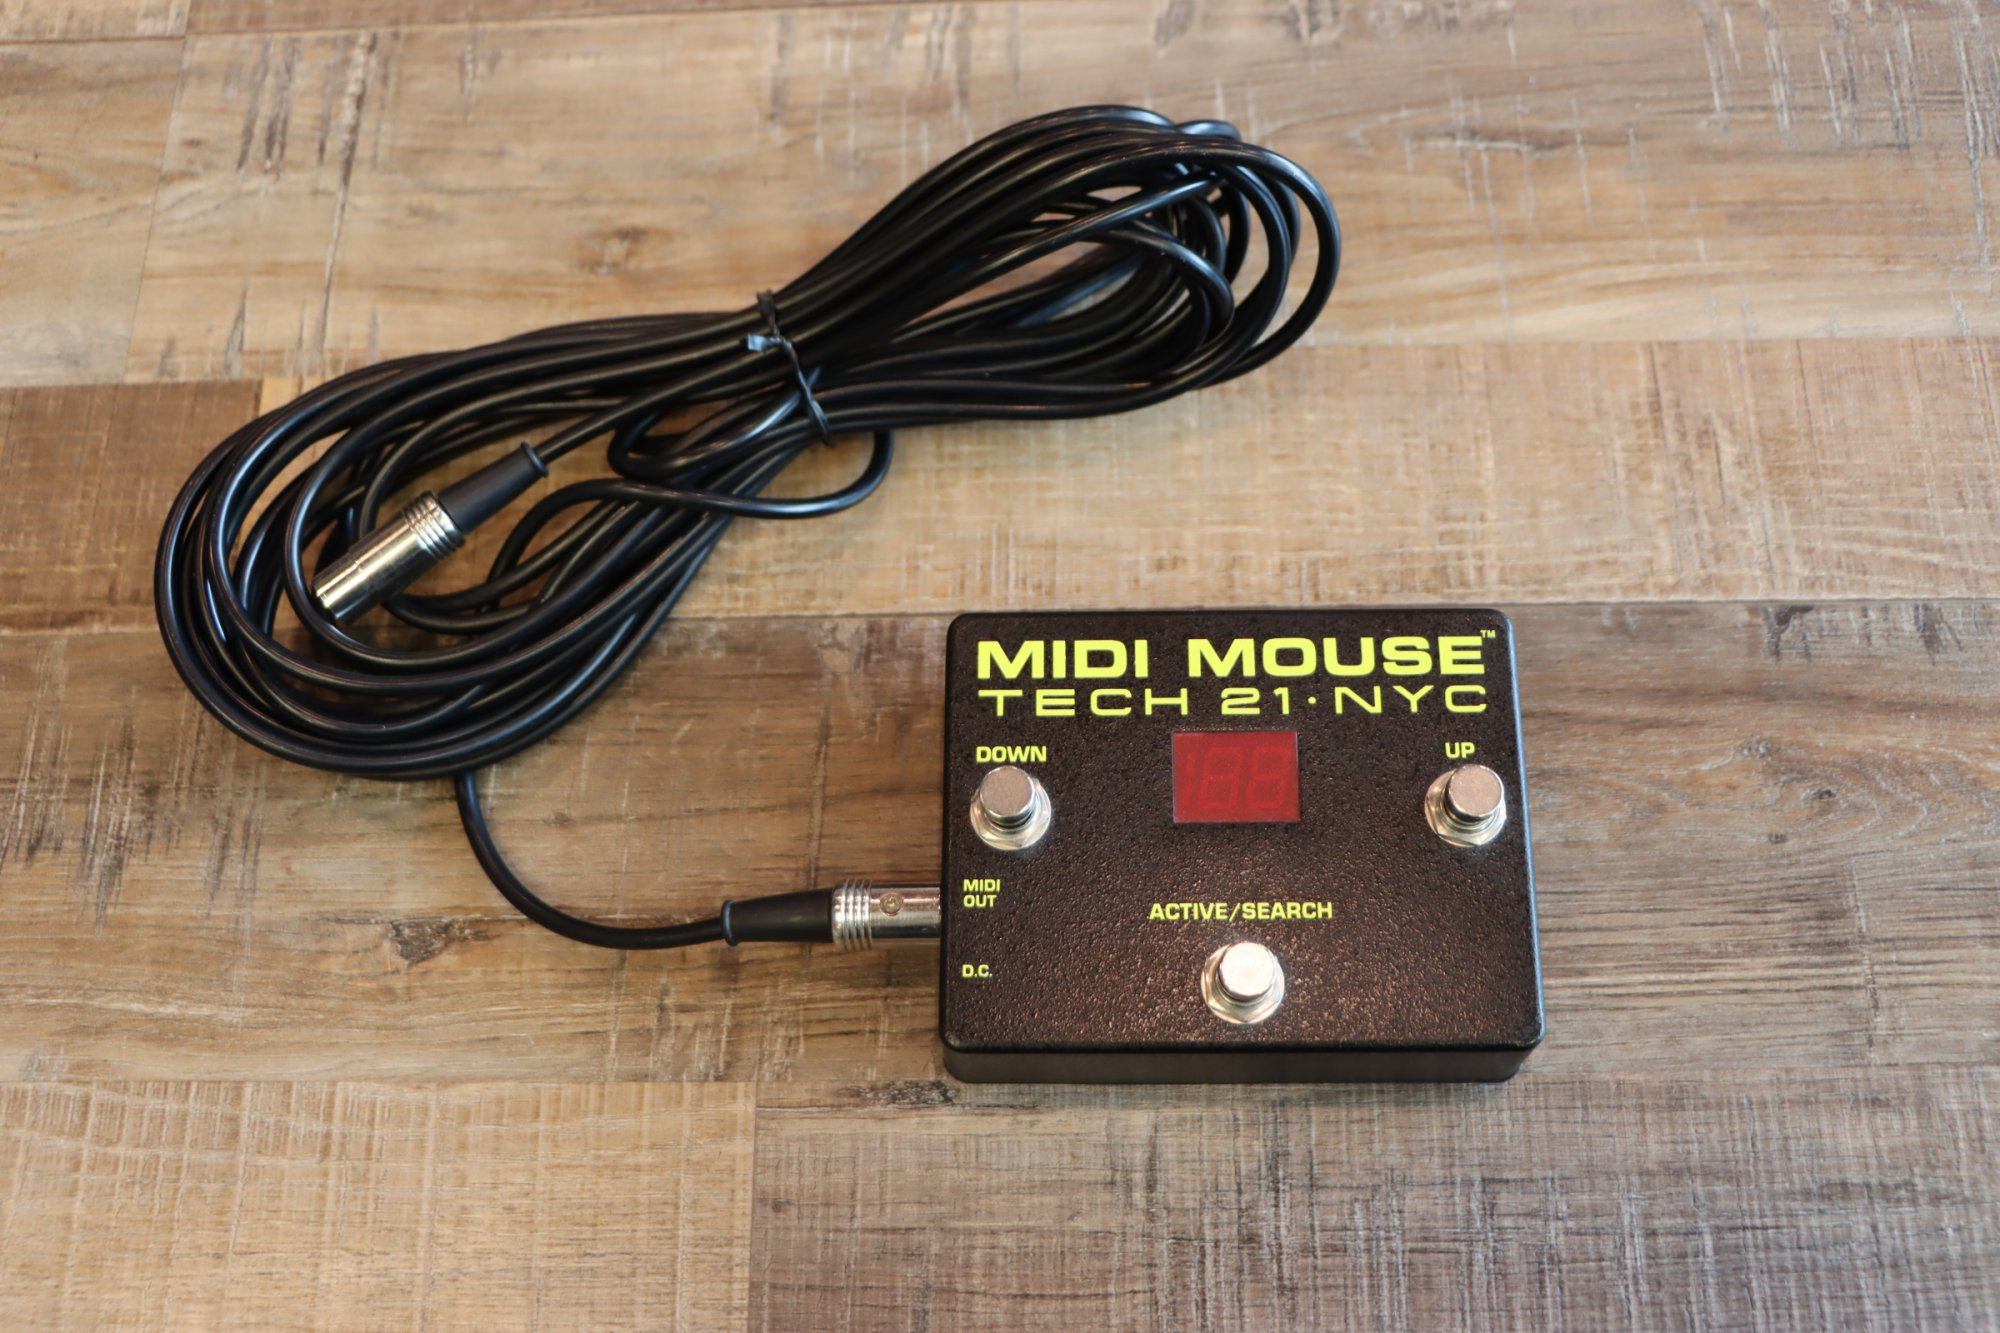 USED Tech 21 NYC MIDI Mouse 3-Button Foot Controller w/MIDI Cable